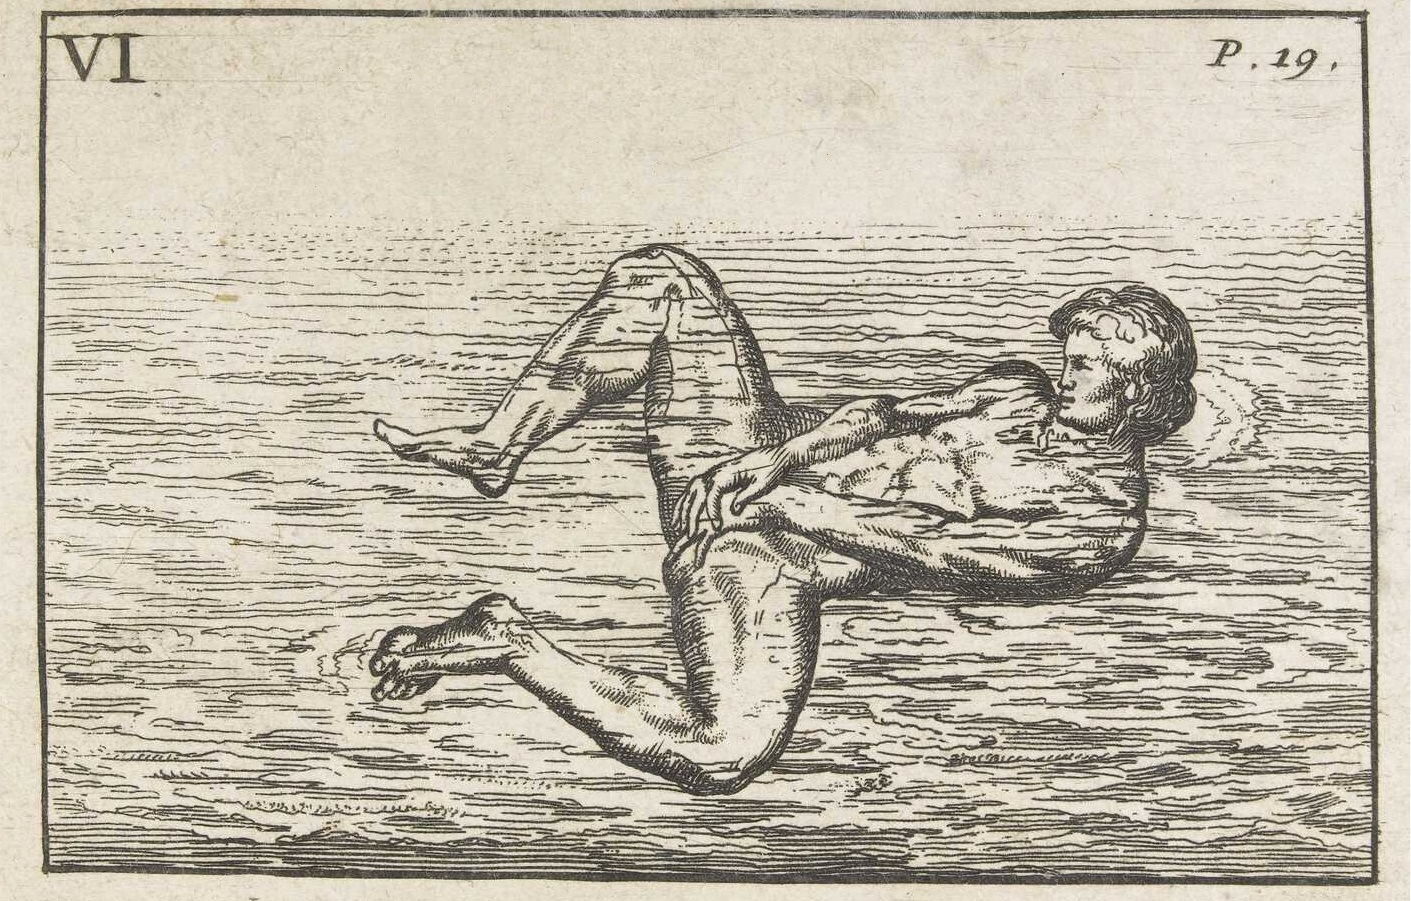 17th c. illustration of swimming technique